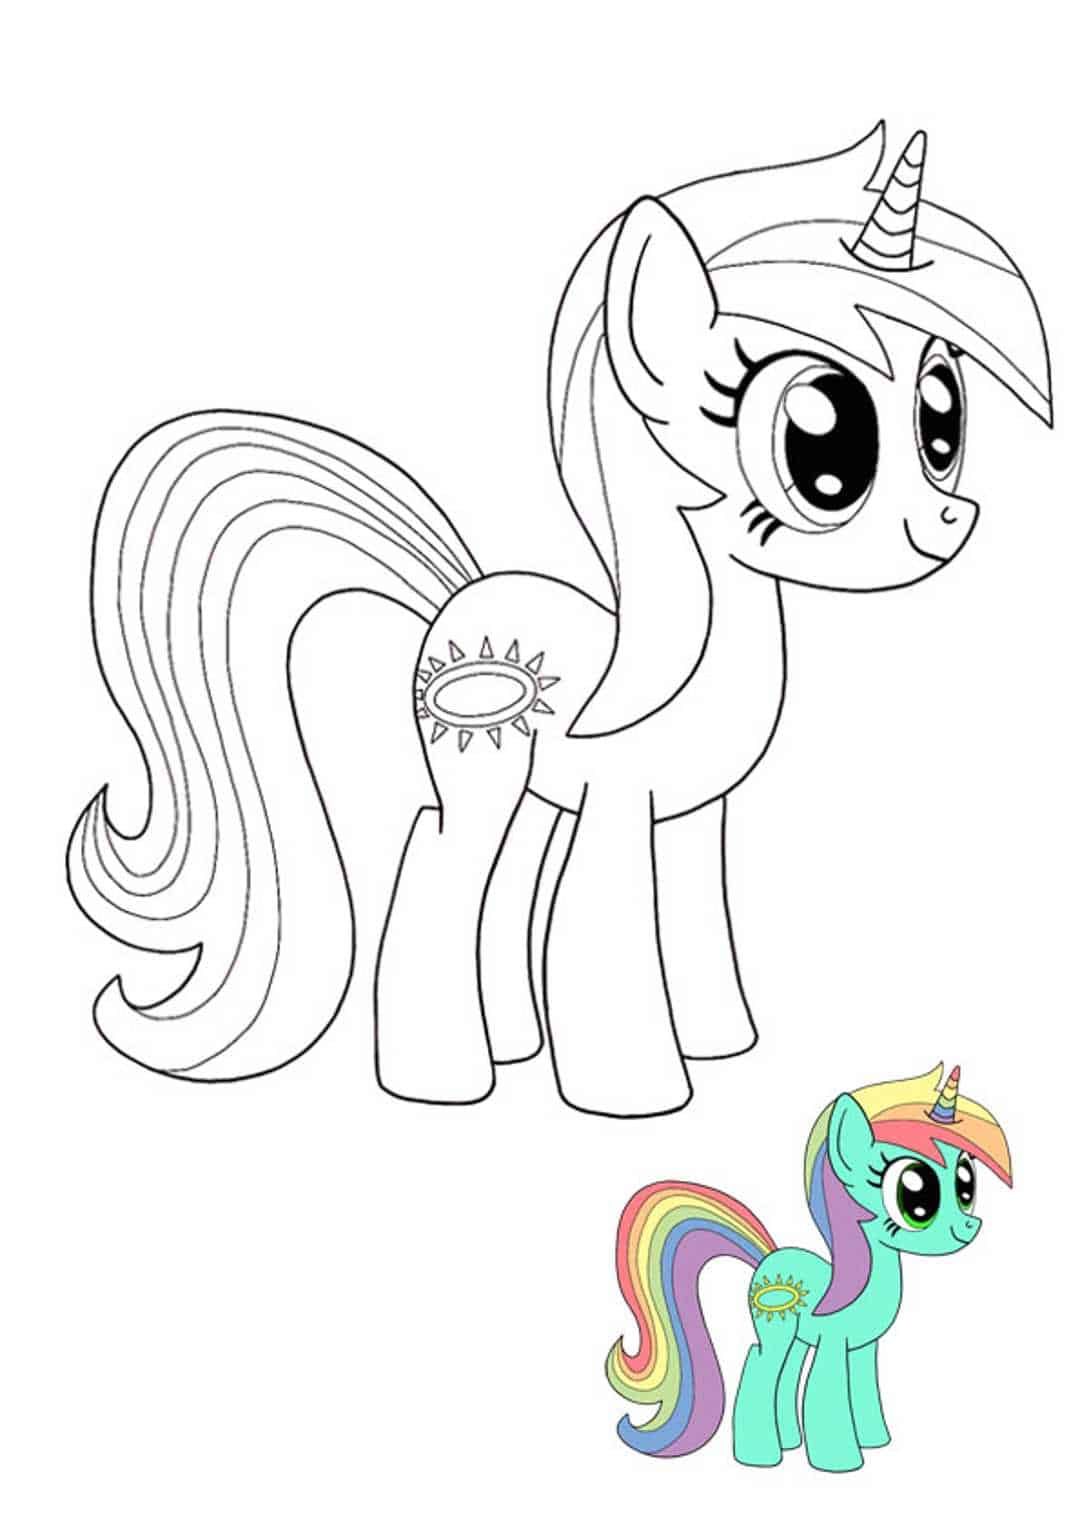 Twilight Sparkle My Little Pony Unicorn coloring page with sample